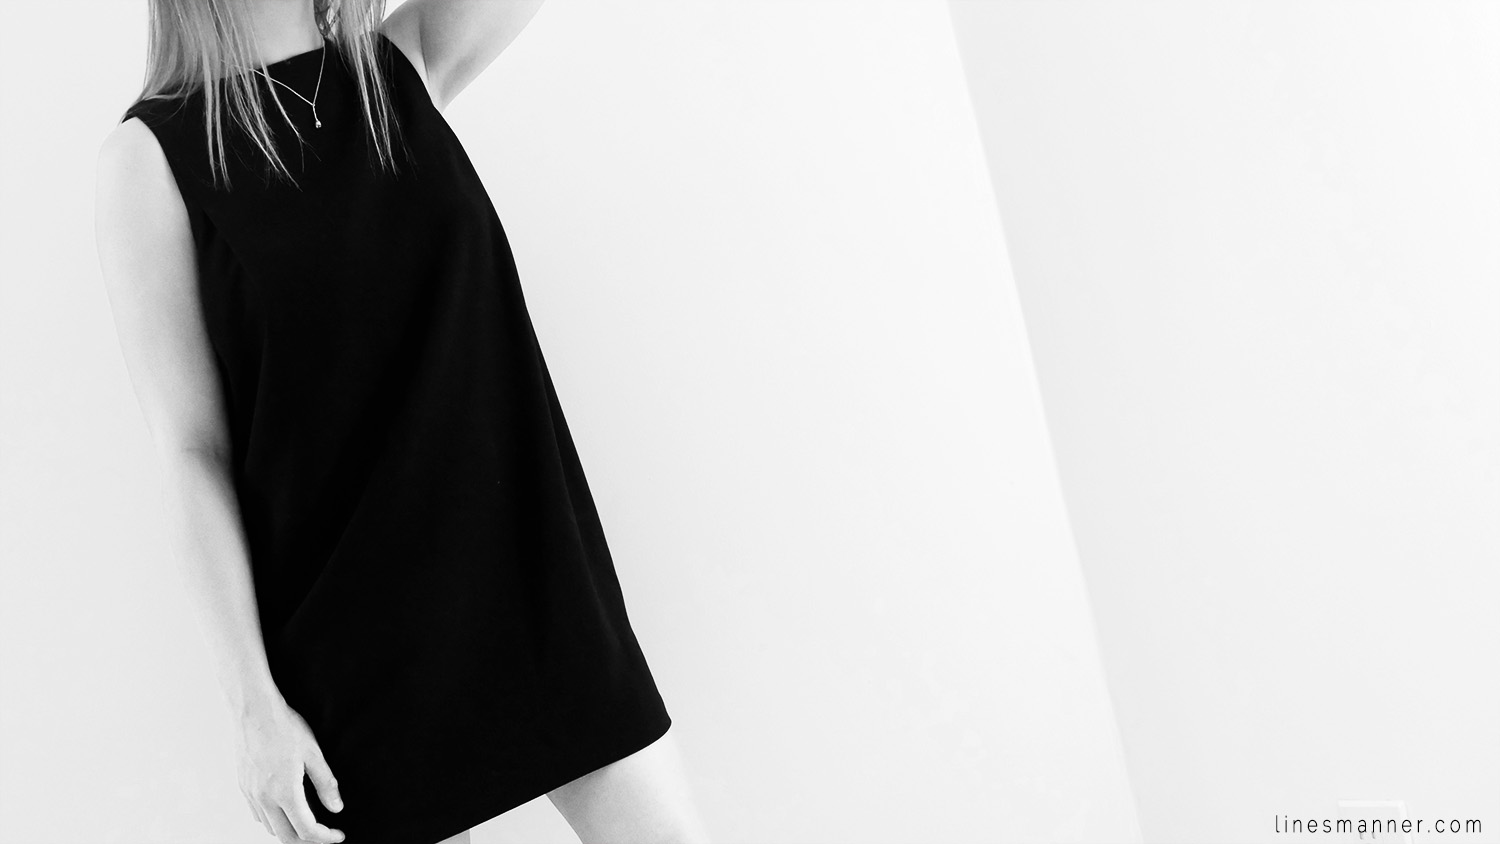 Lines-Manner-Remind-2015-Minimal-Essential-Outfit-Inspiration-Blog-Timeless-Year-Seasons-Details-Travel-Fashion-Versatile-Clean-Sleek-Quality-24